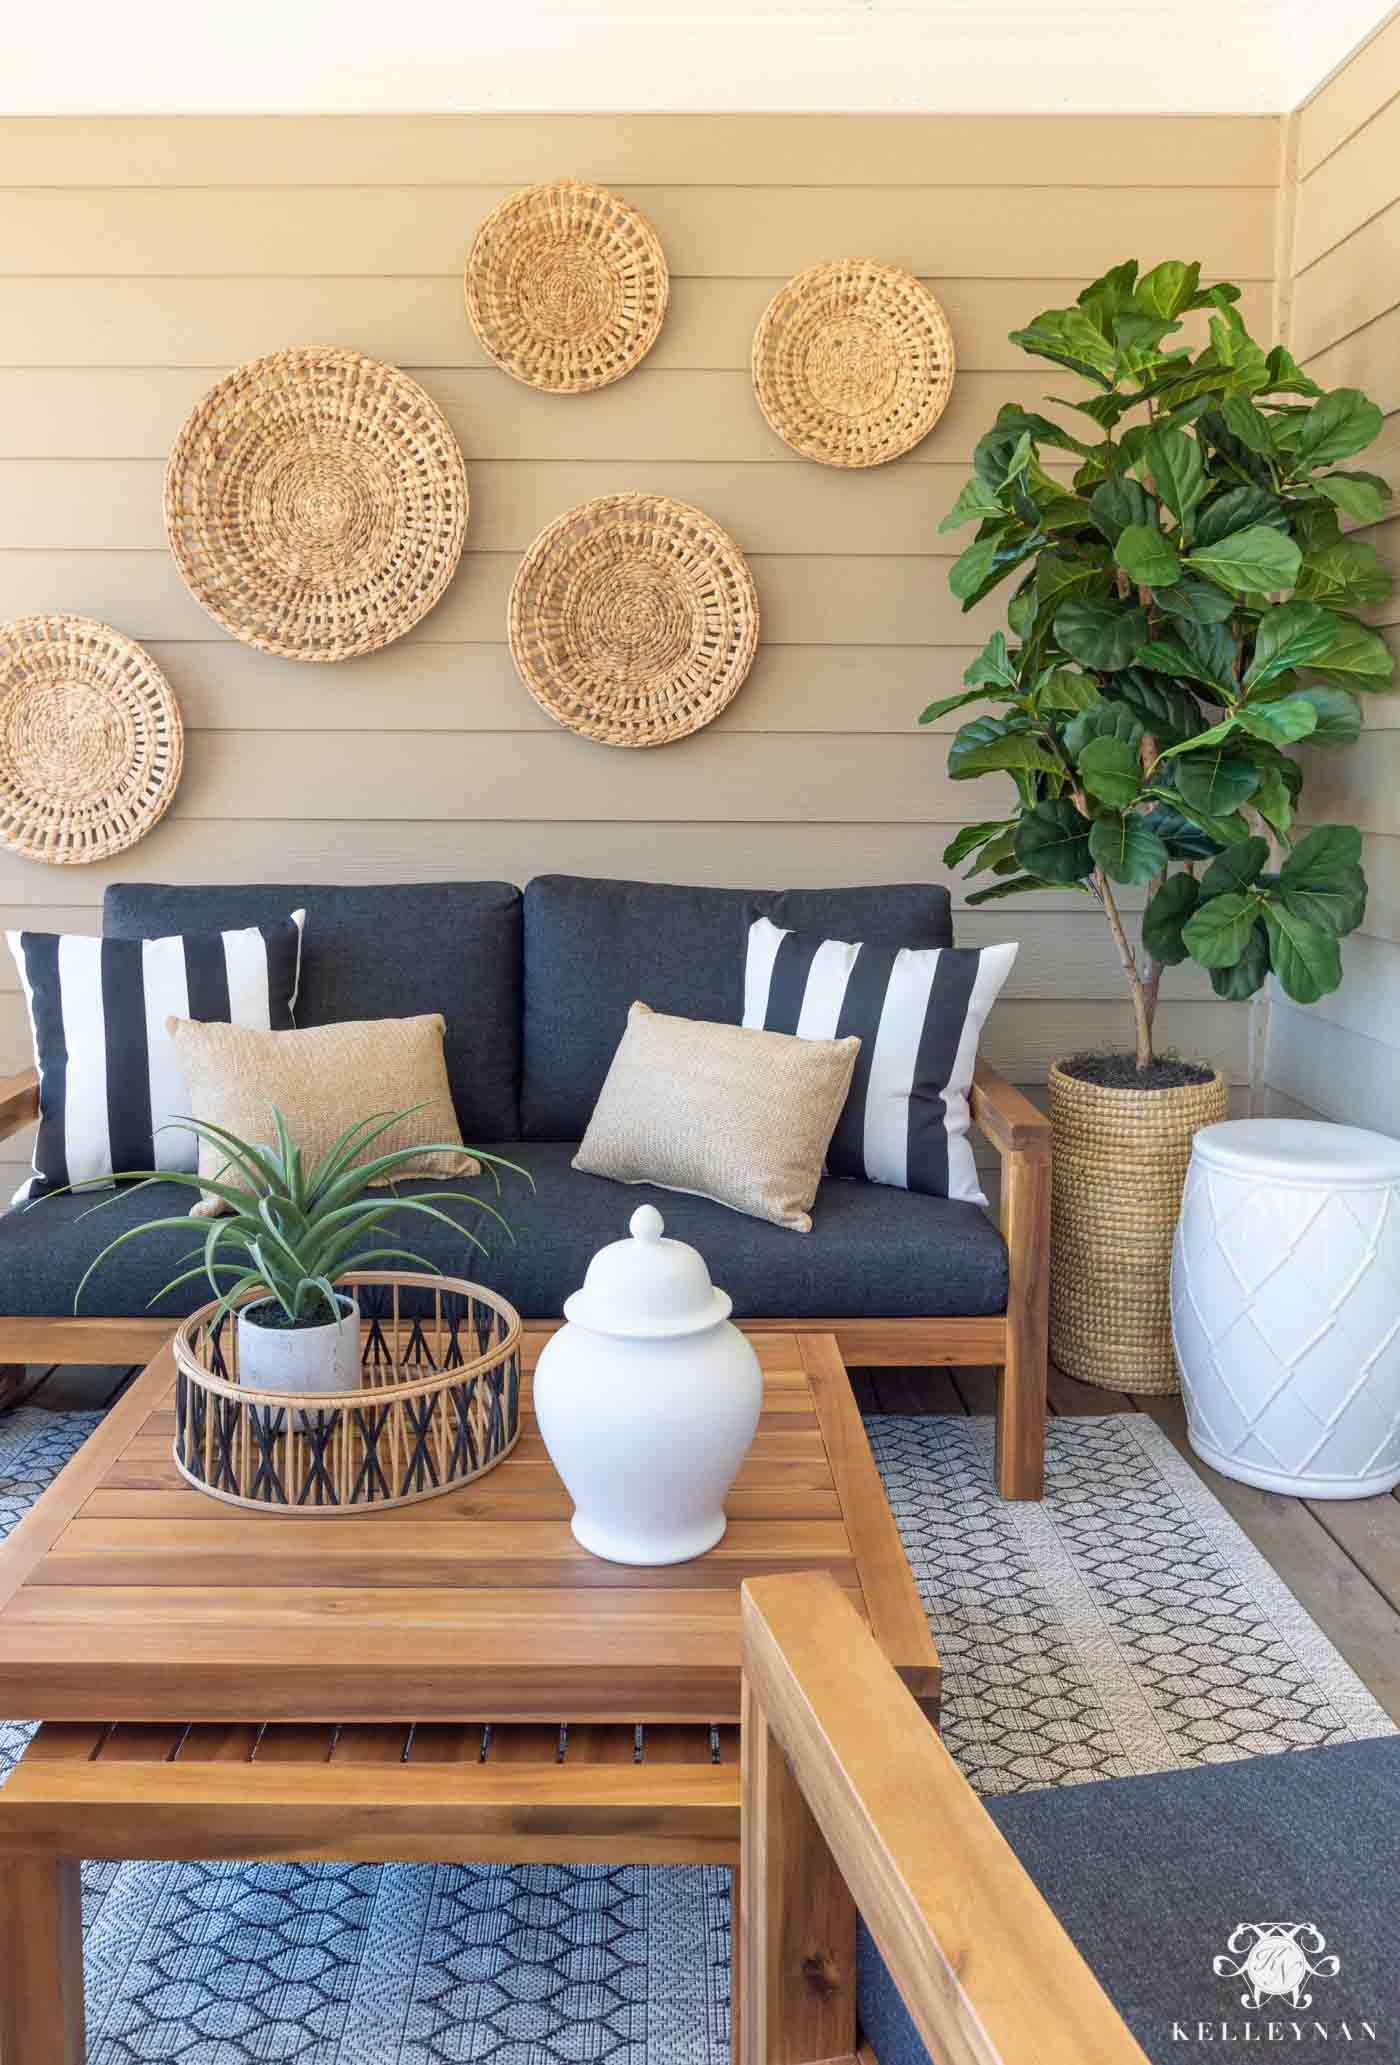 Simple porch decor with gray couch and baskets hanging on the house's siding